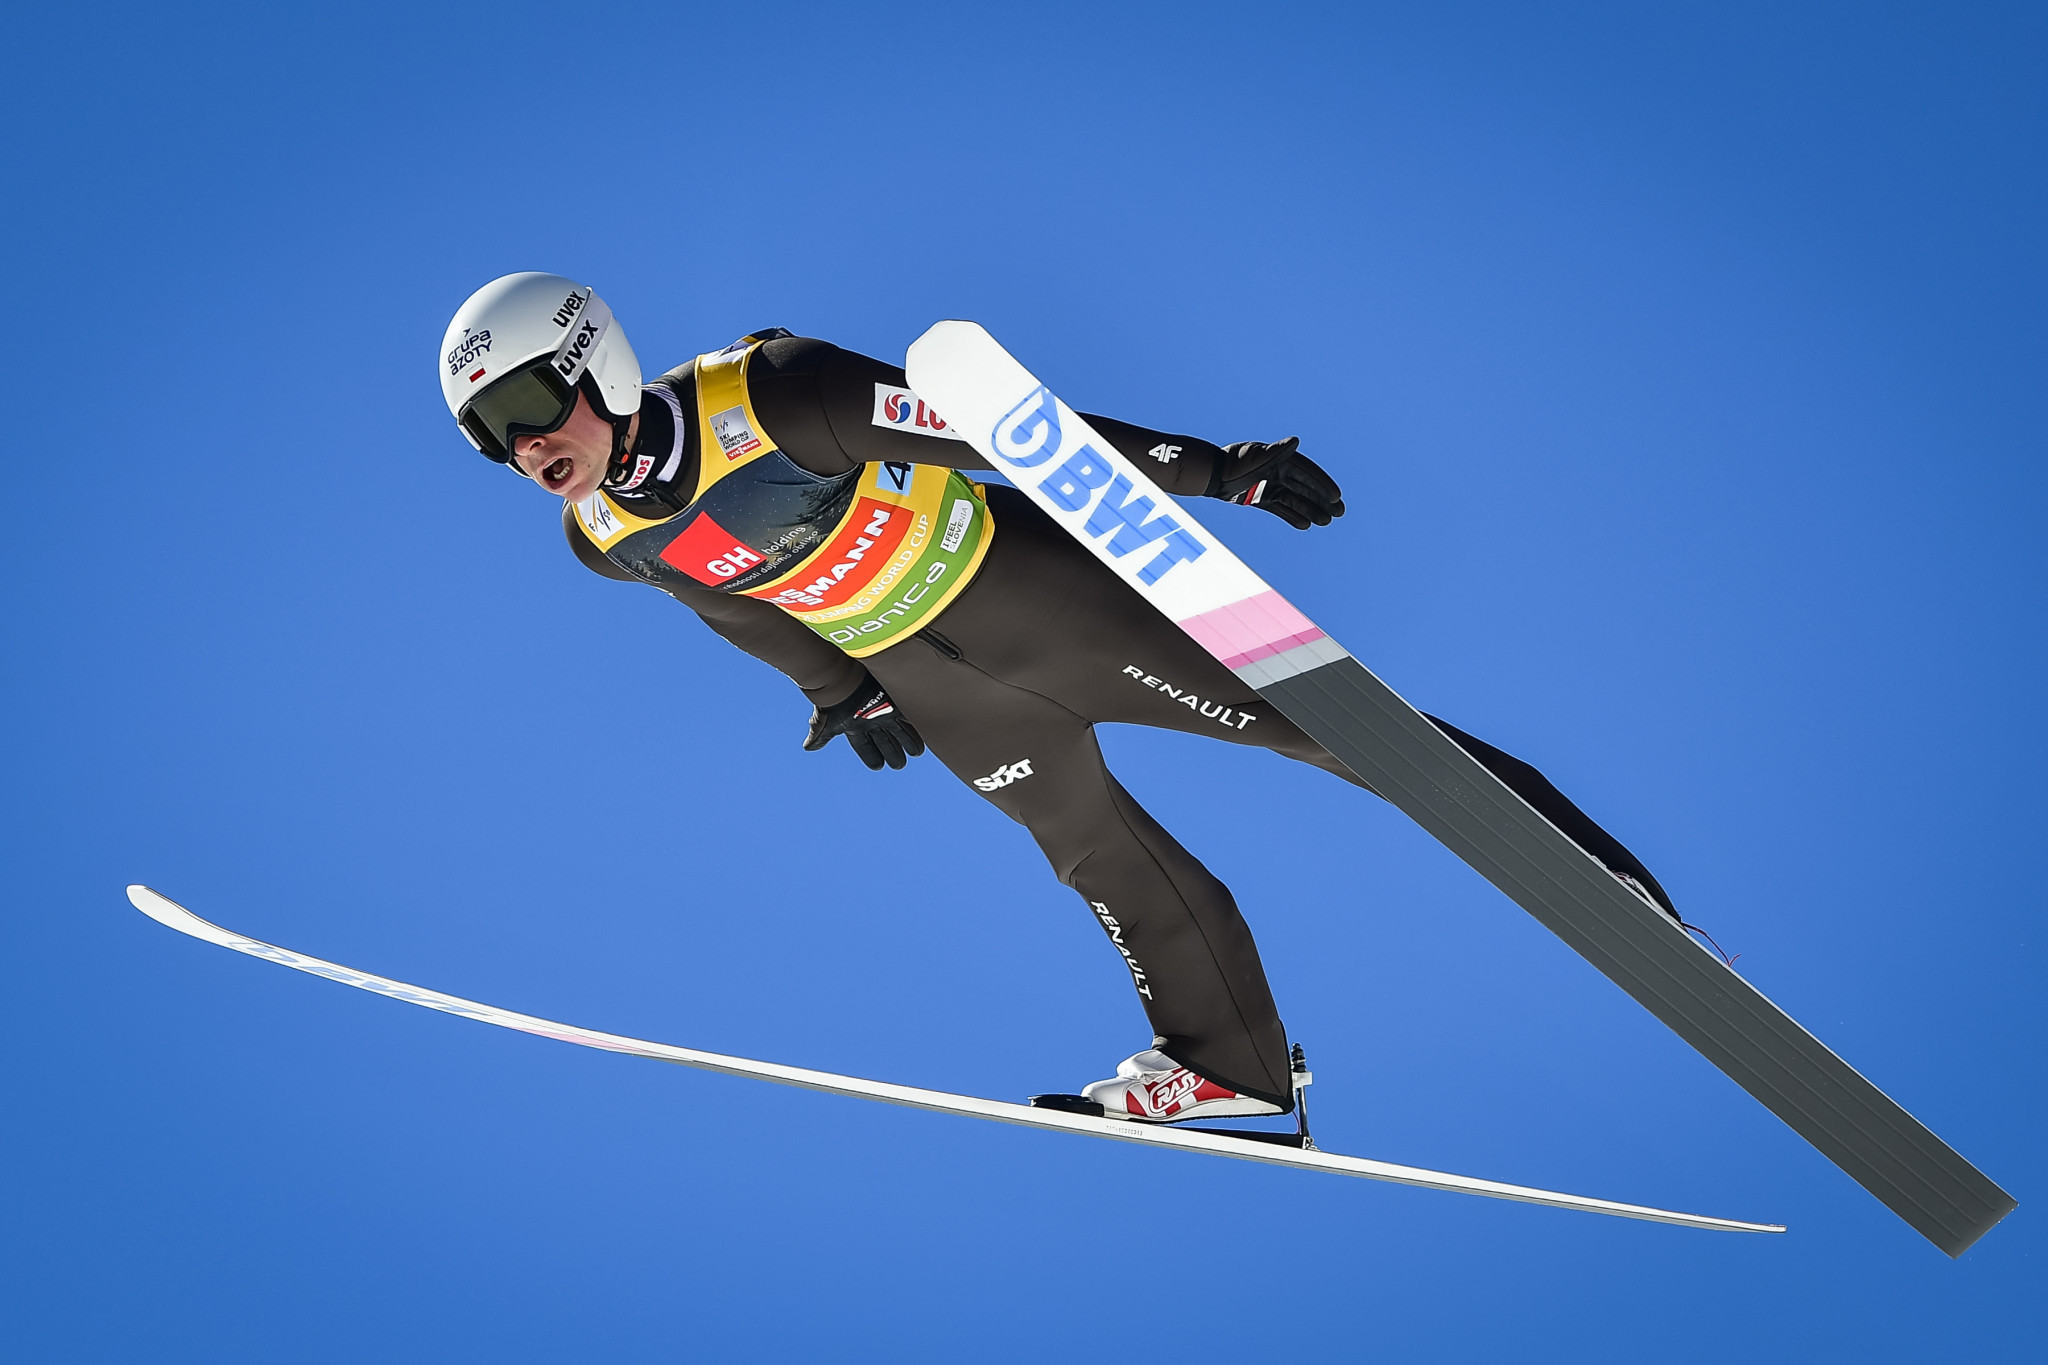 Poland triumph in final team event of Ski Jumping World Cup season in Planica